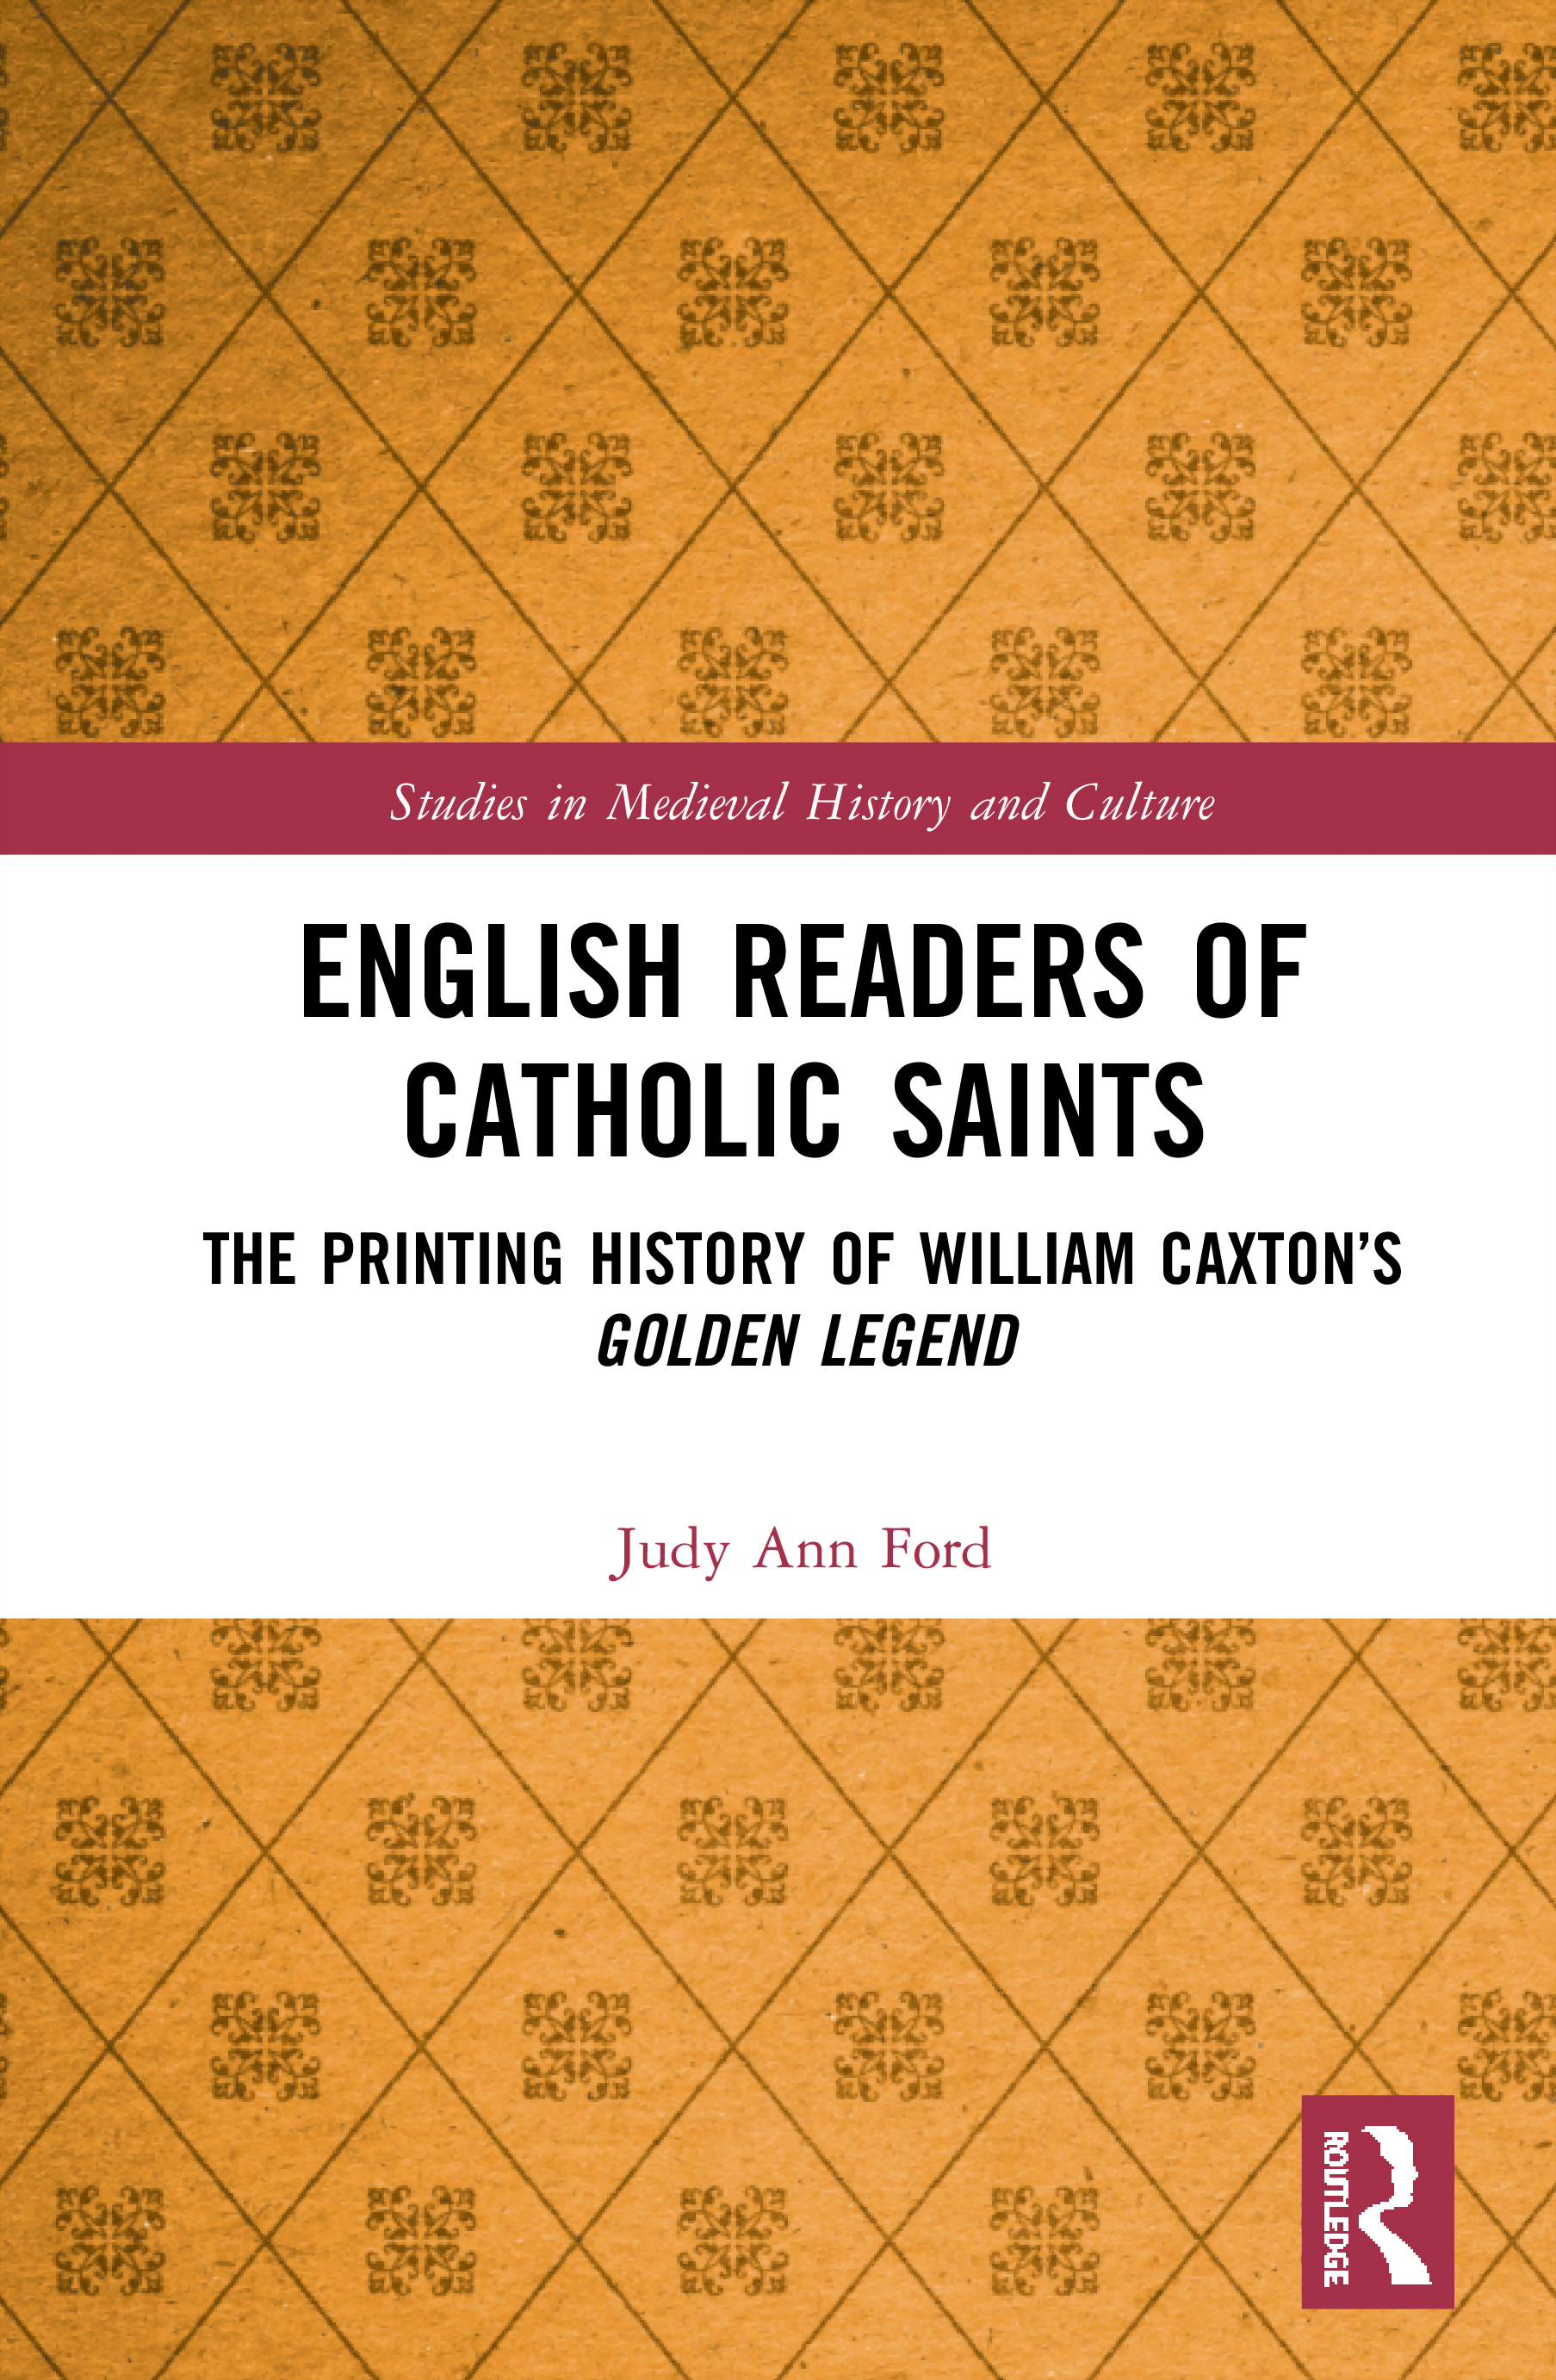 English Readers of Catholic Saints: The Printing History of William Caxton's Golden Legend book cover